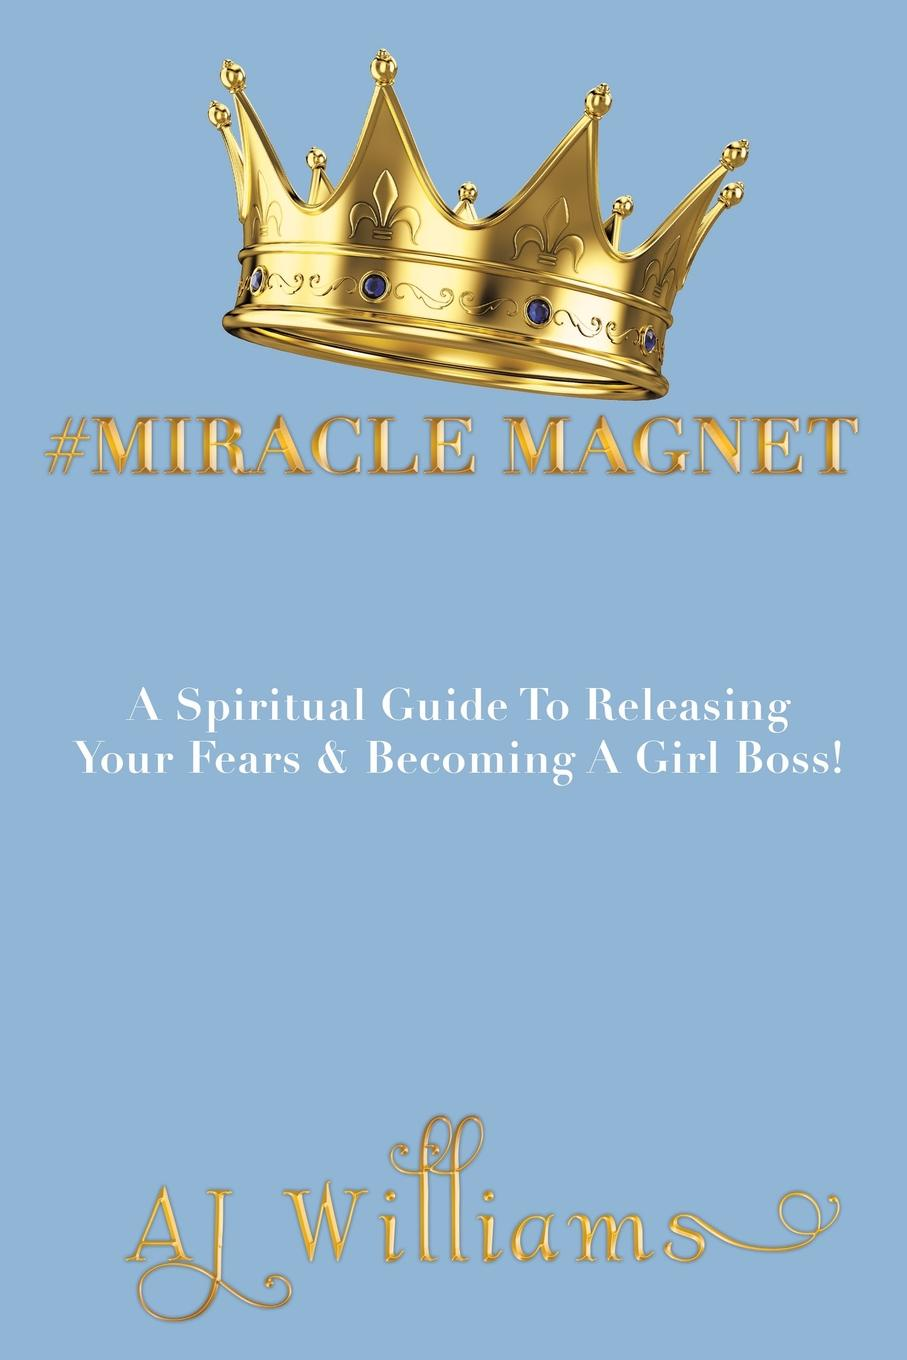 AJ Williams #Miracle Magnet. A Spiritual Guide to Releasing Your Fears & Becoming a Girl Boss evelyn underhill the complete christian mystic a practical step by step guide for awakening to the presence of god